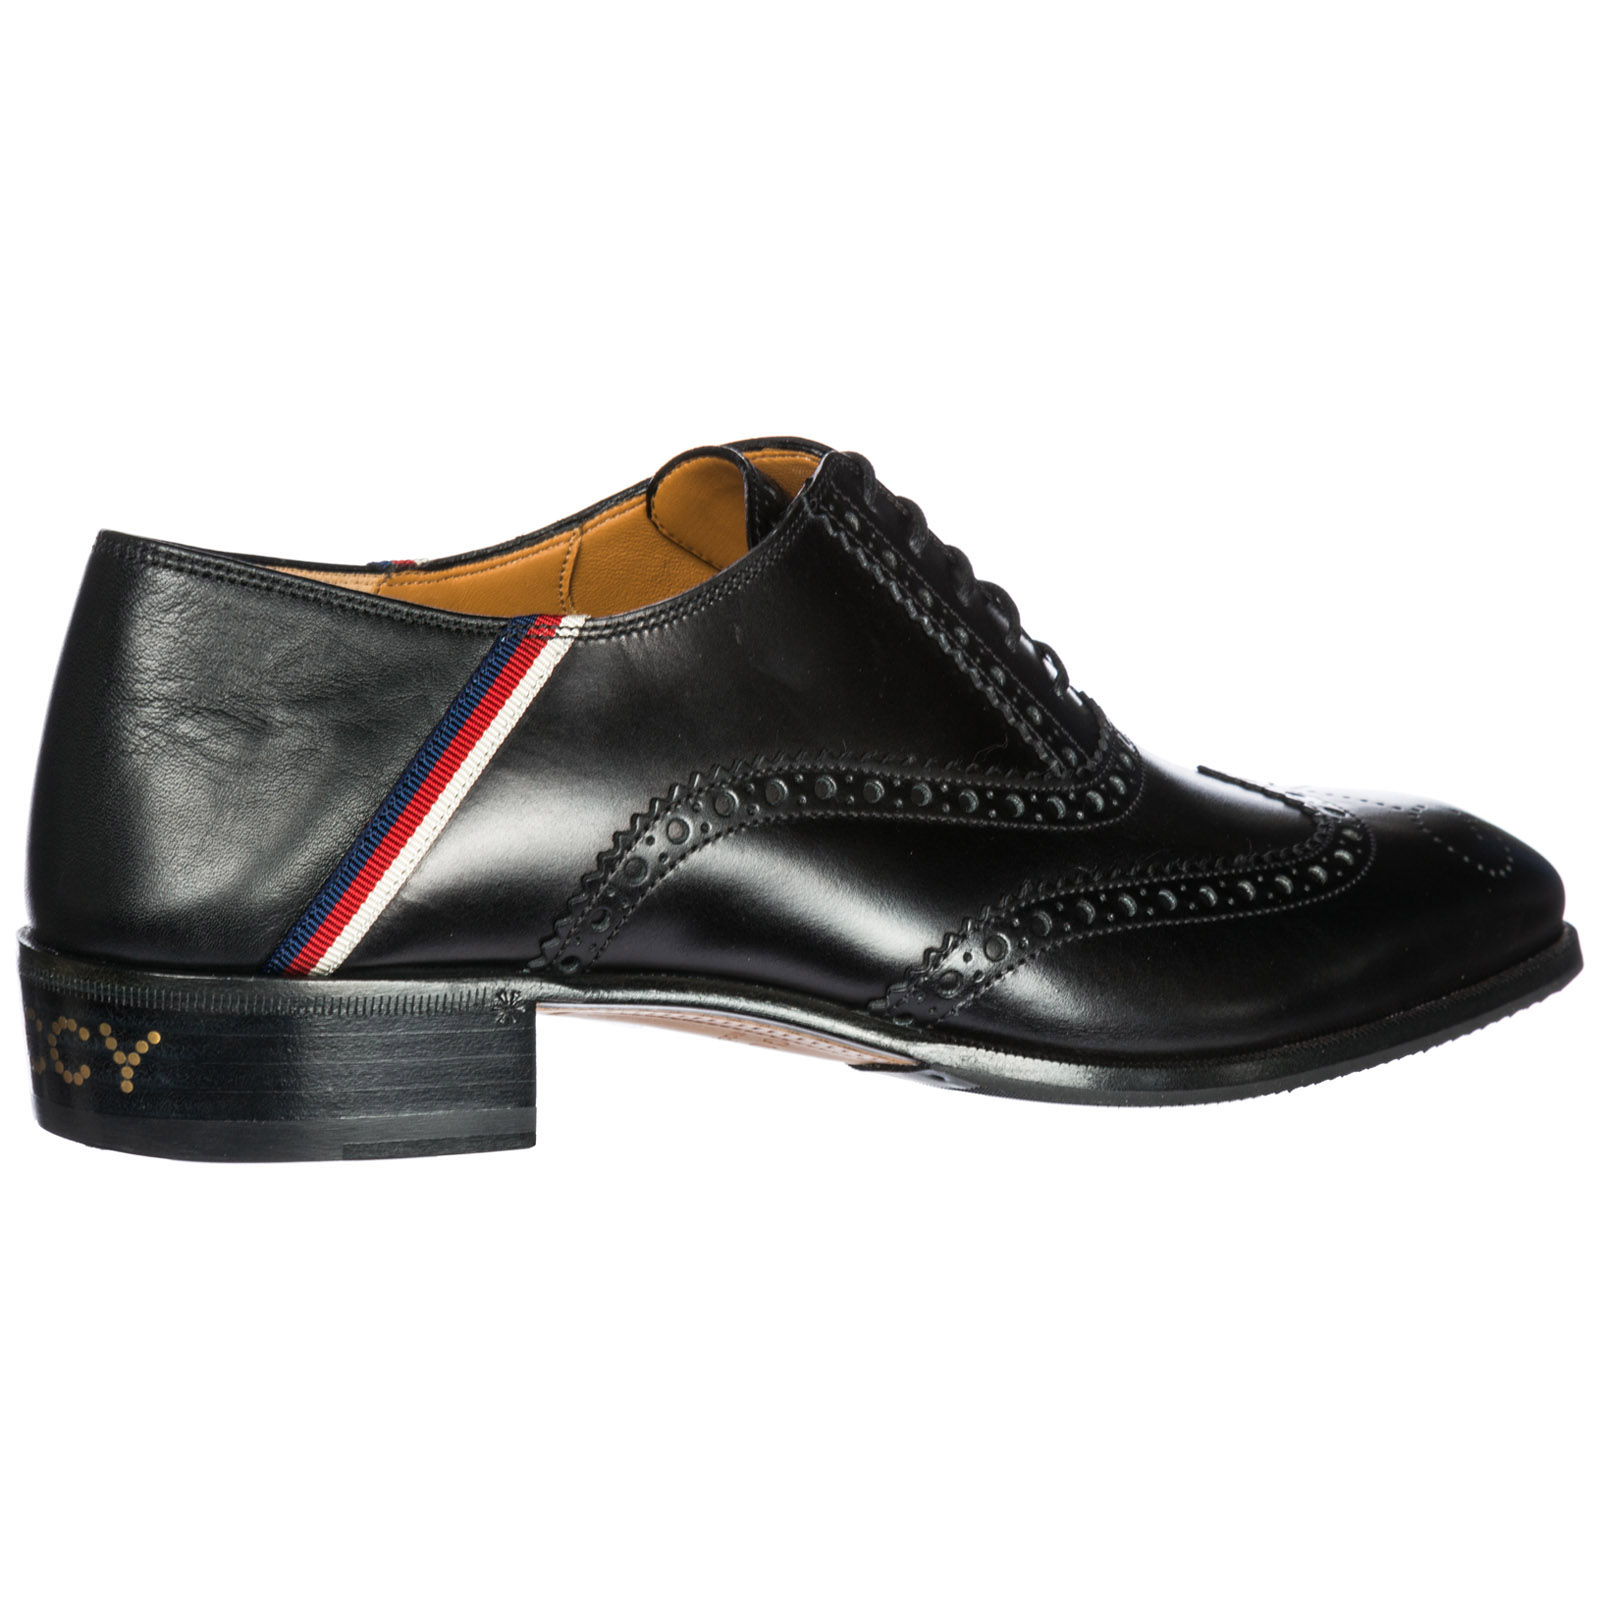 a433545233e Gucci Men s classic leather lace up laced formal shoes brogue sylvie web